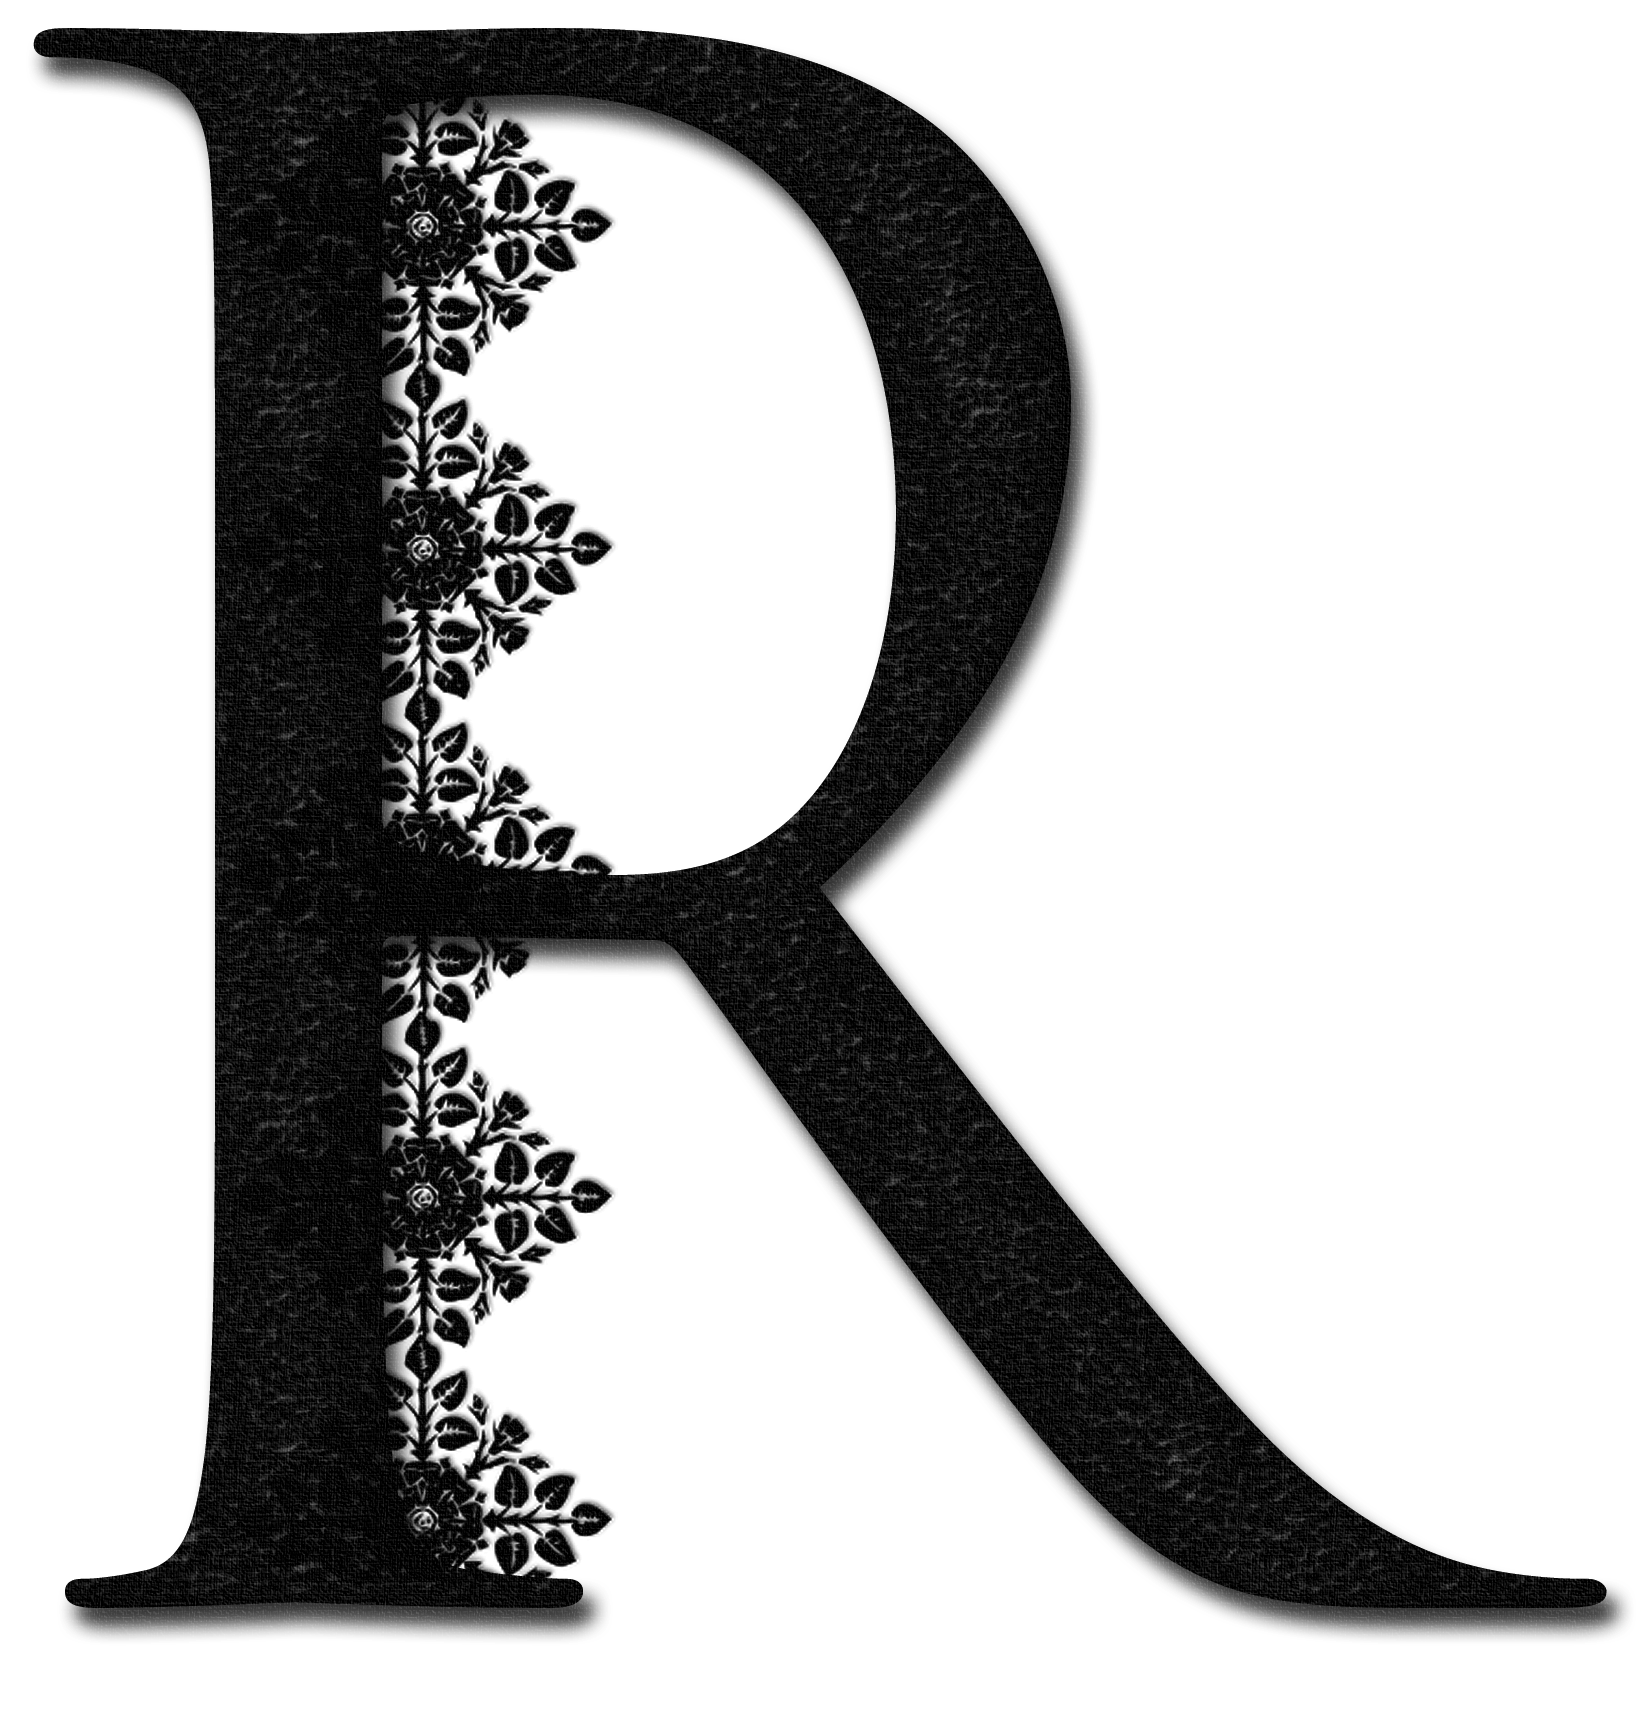 Fancy r letter png. Glamorous lady alphabetically speaking